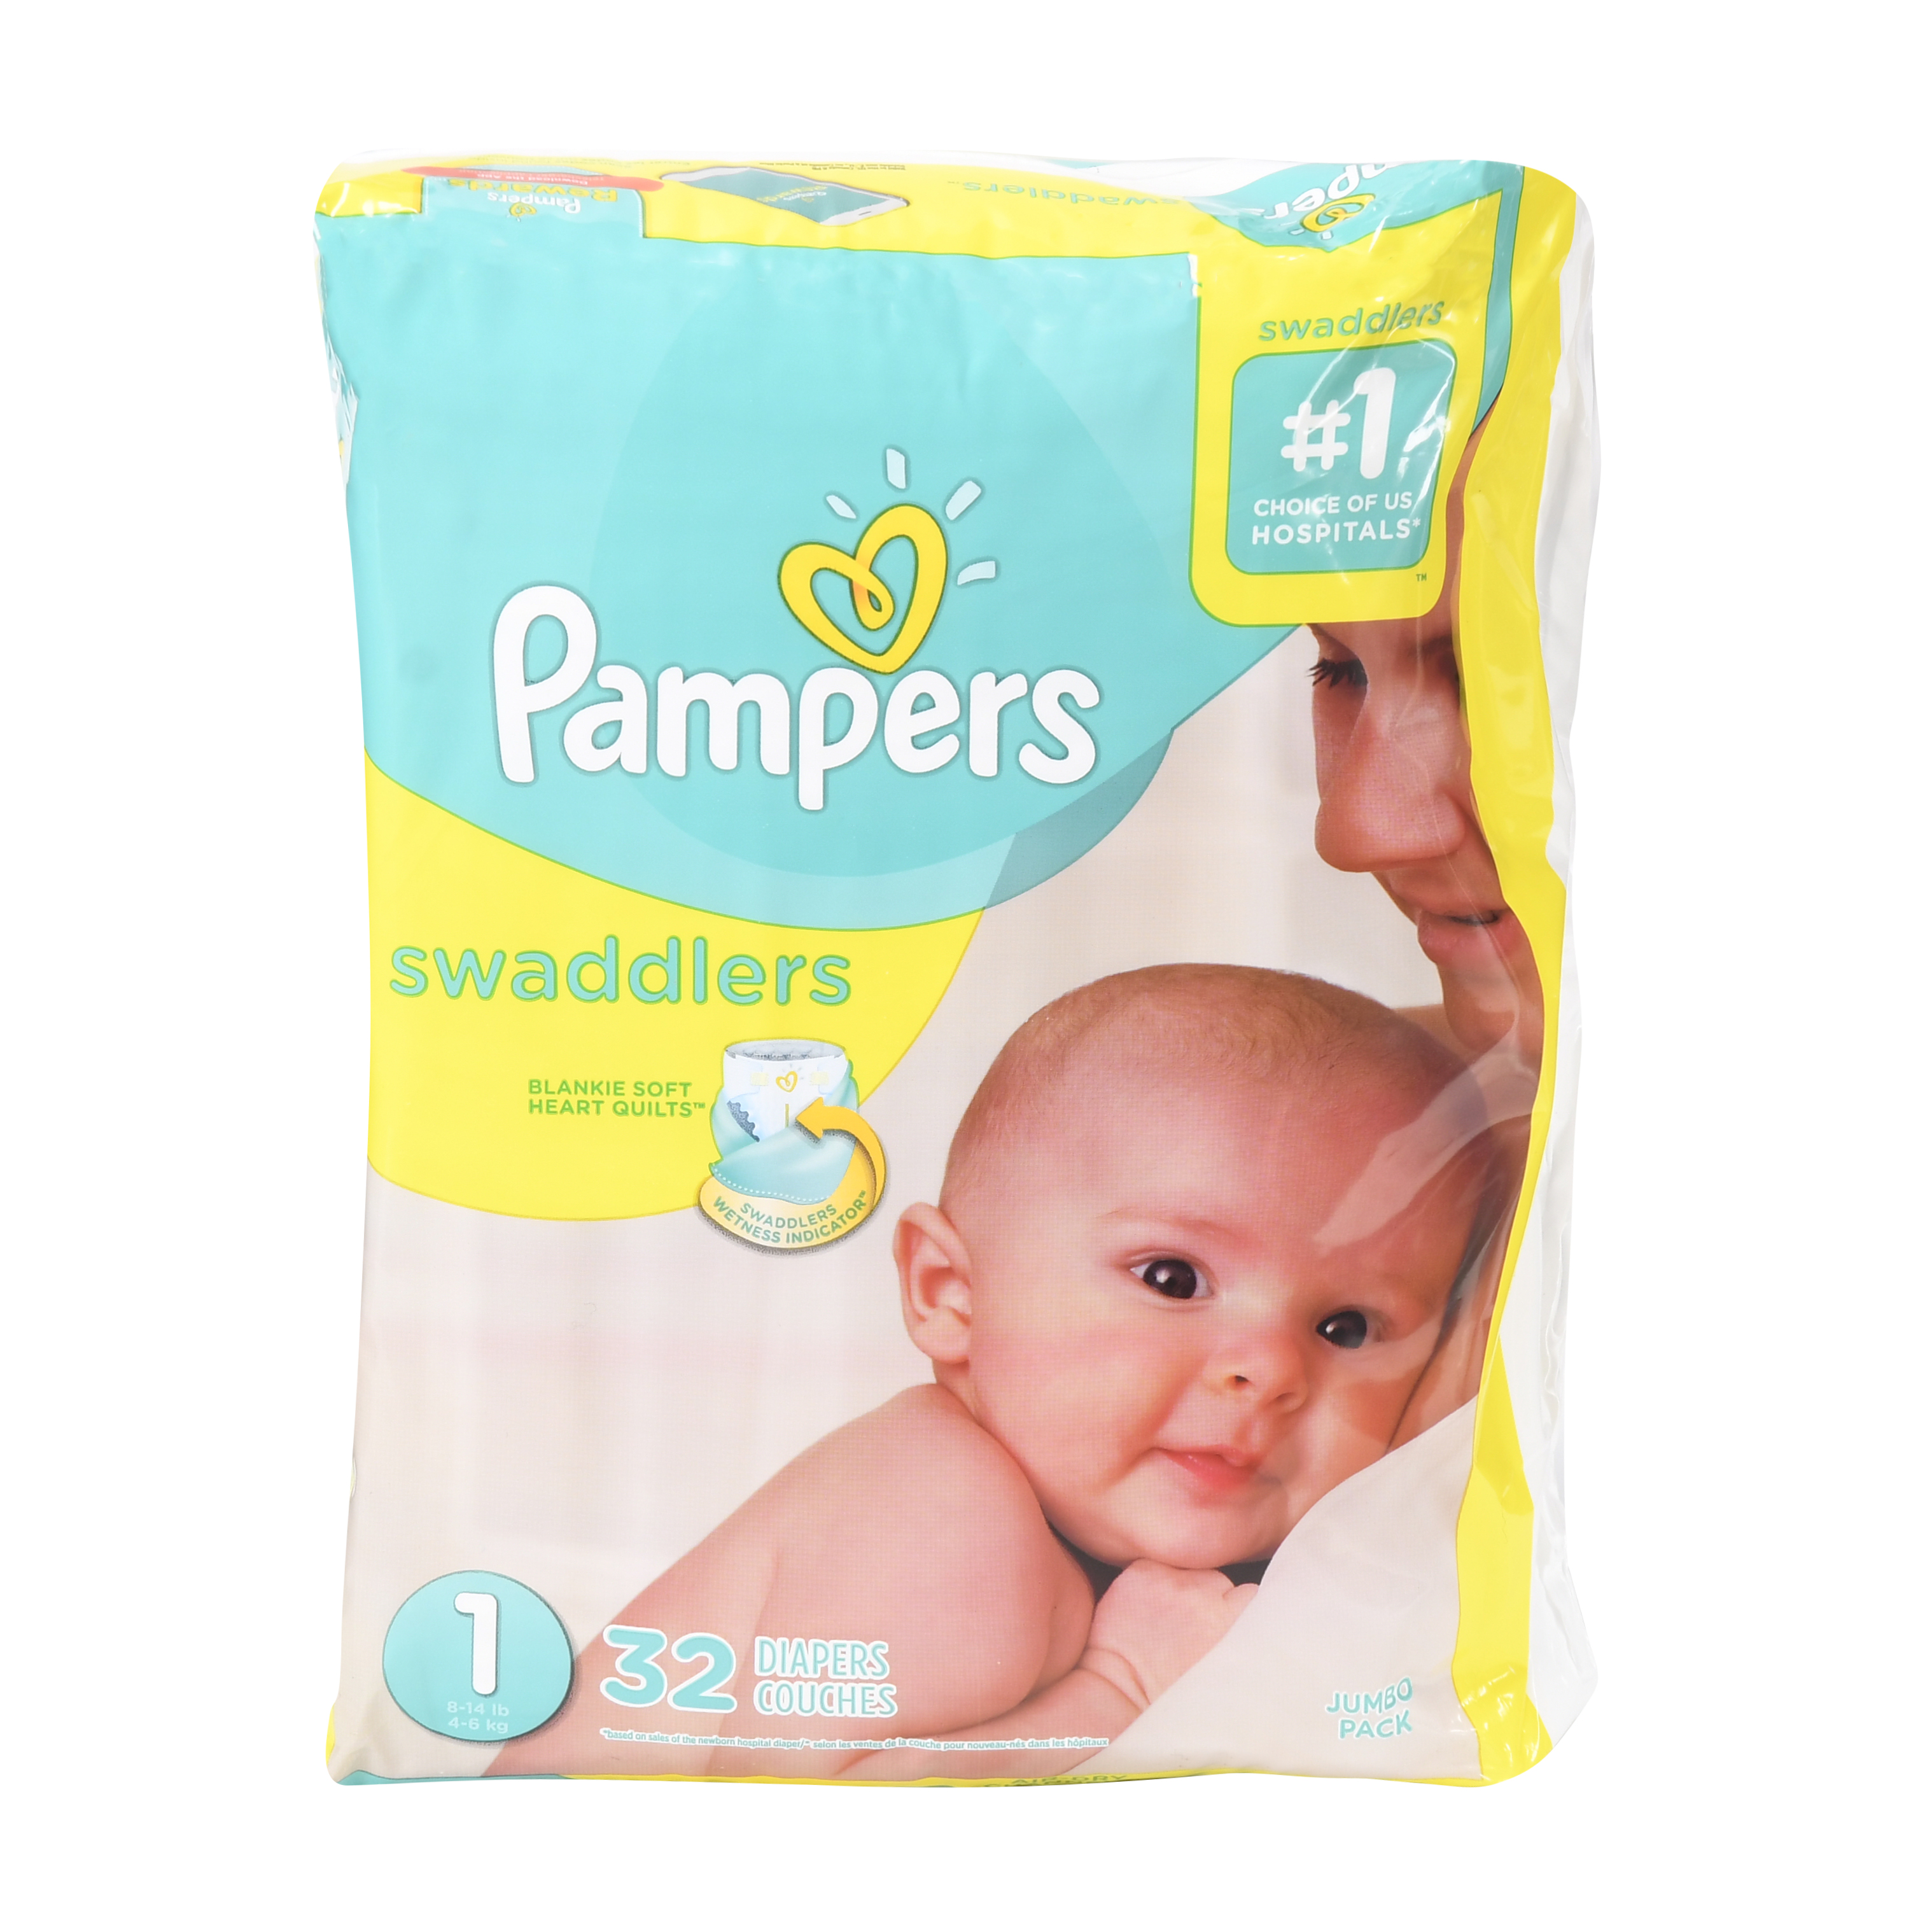 Pampers Swaddlers Size 1 Jumbo Pack 32ct